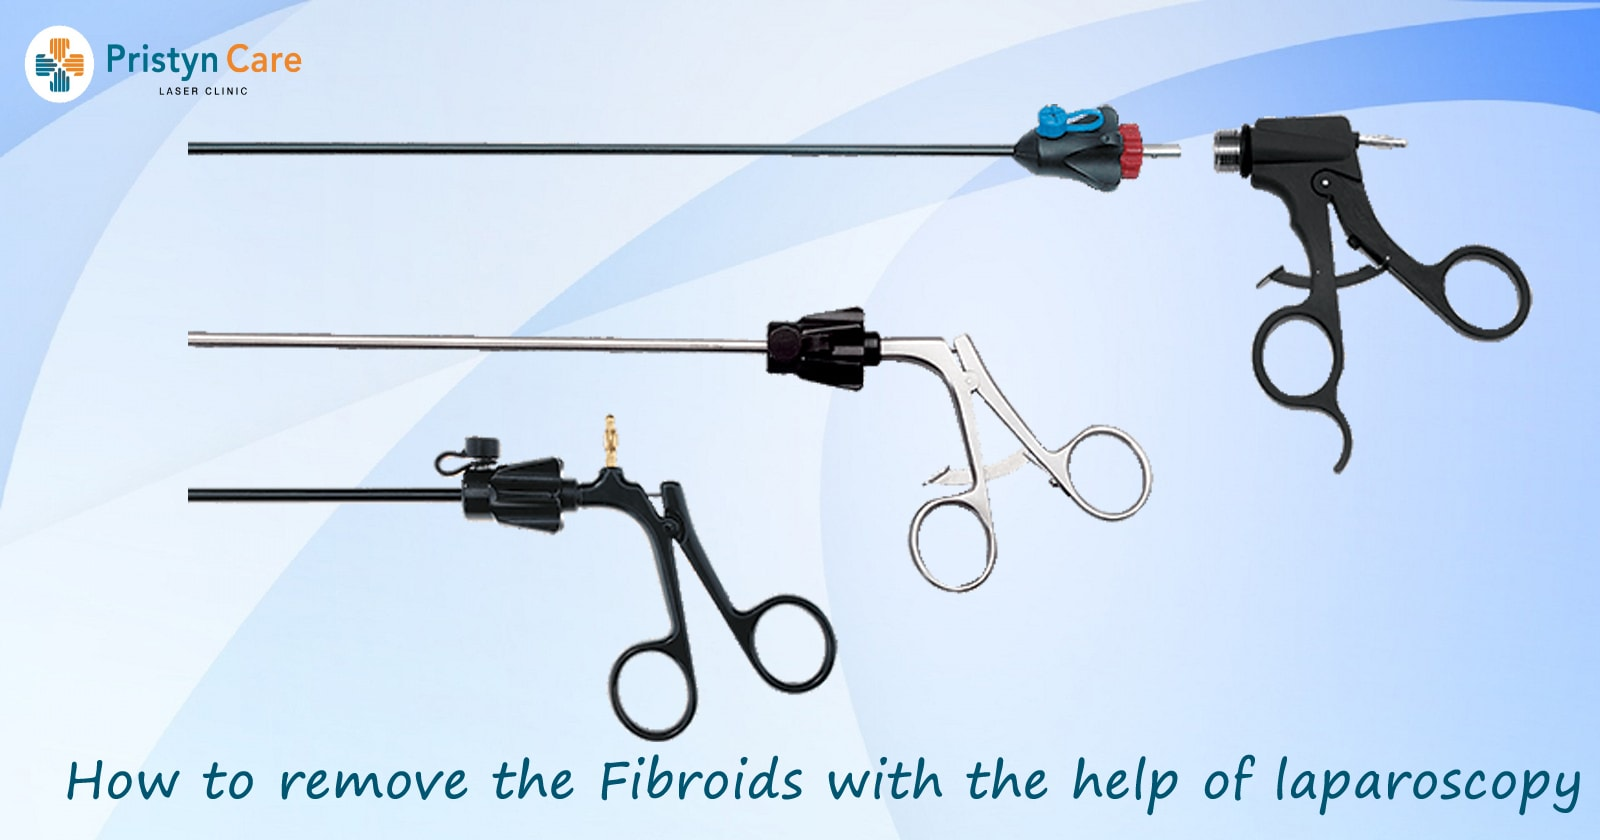 How to remove the Fibroids with the help of laparoscopy